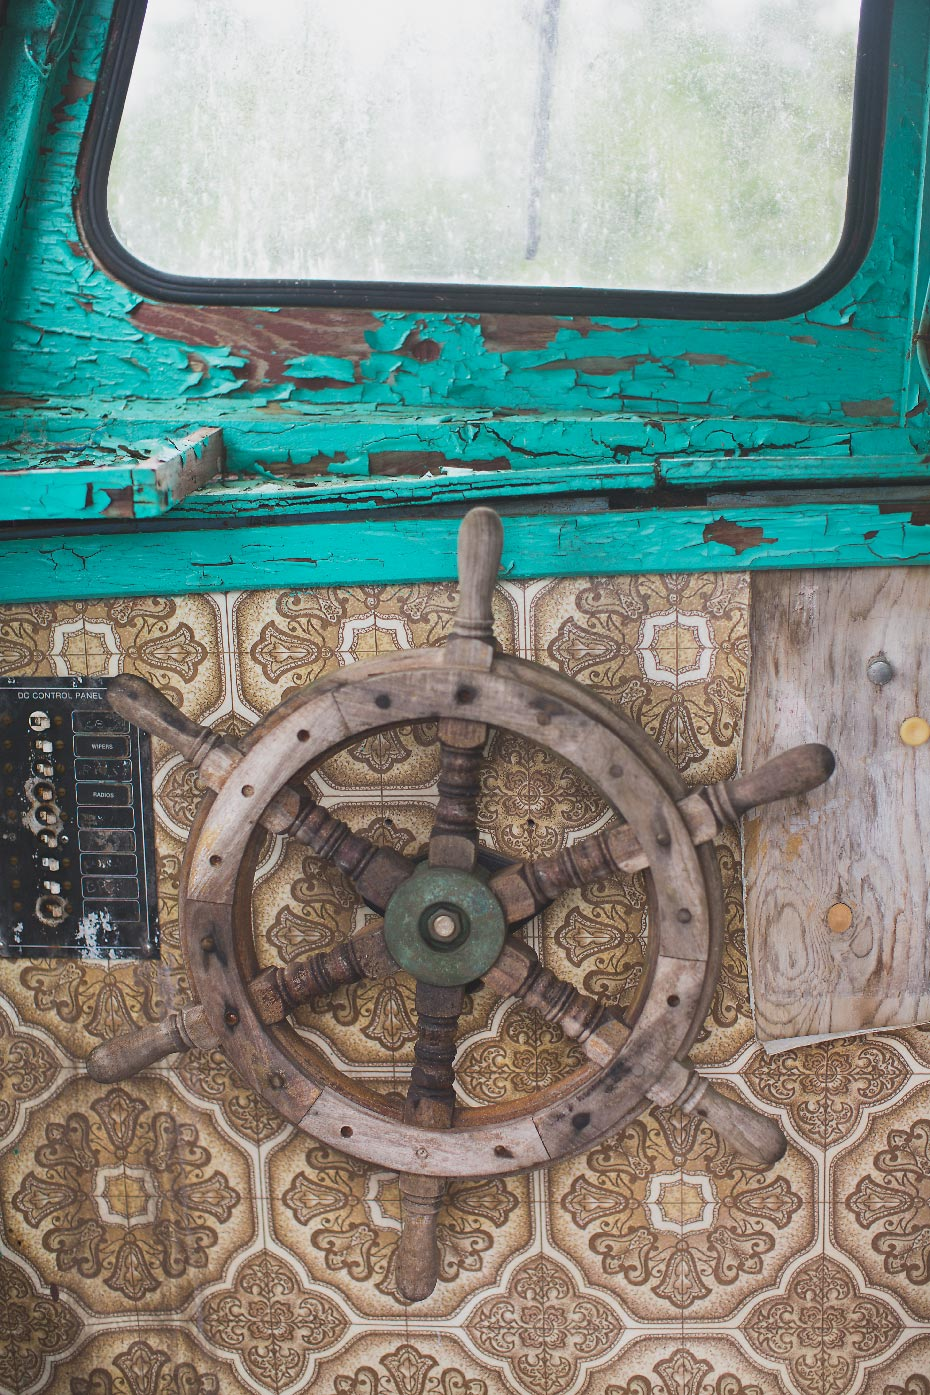 Stacey Van Berkel Photography I Ships wheel I Teal peeling paint I Nova Scotia, Canada